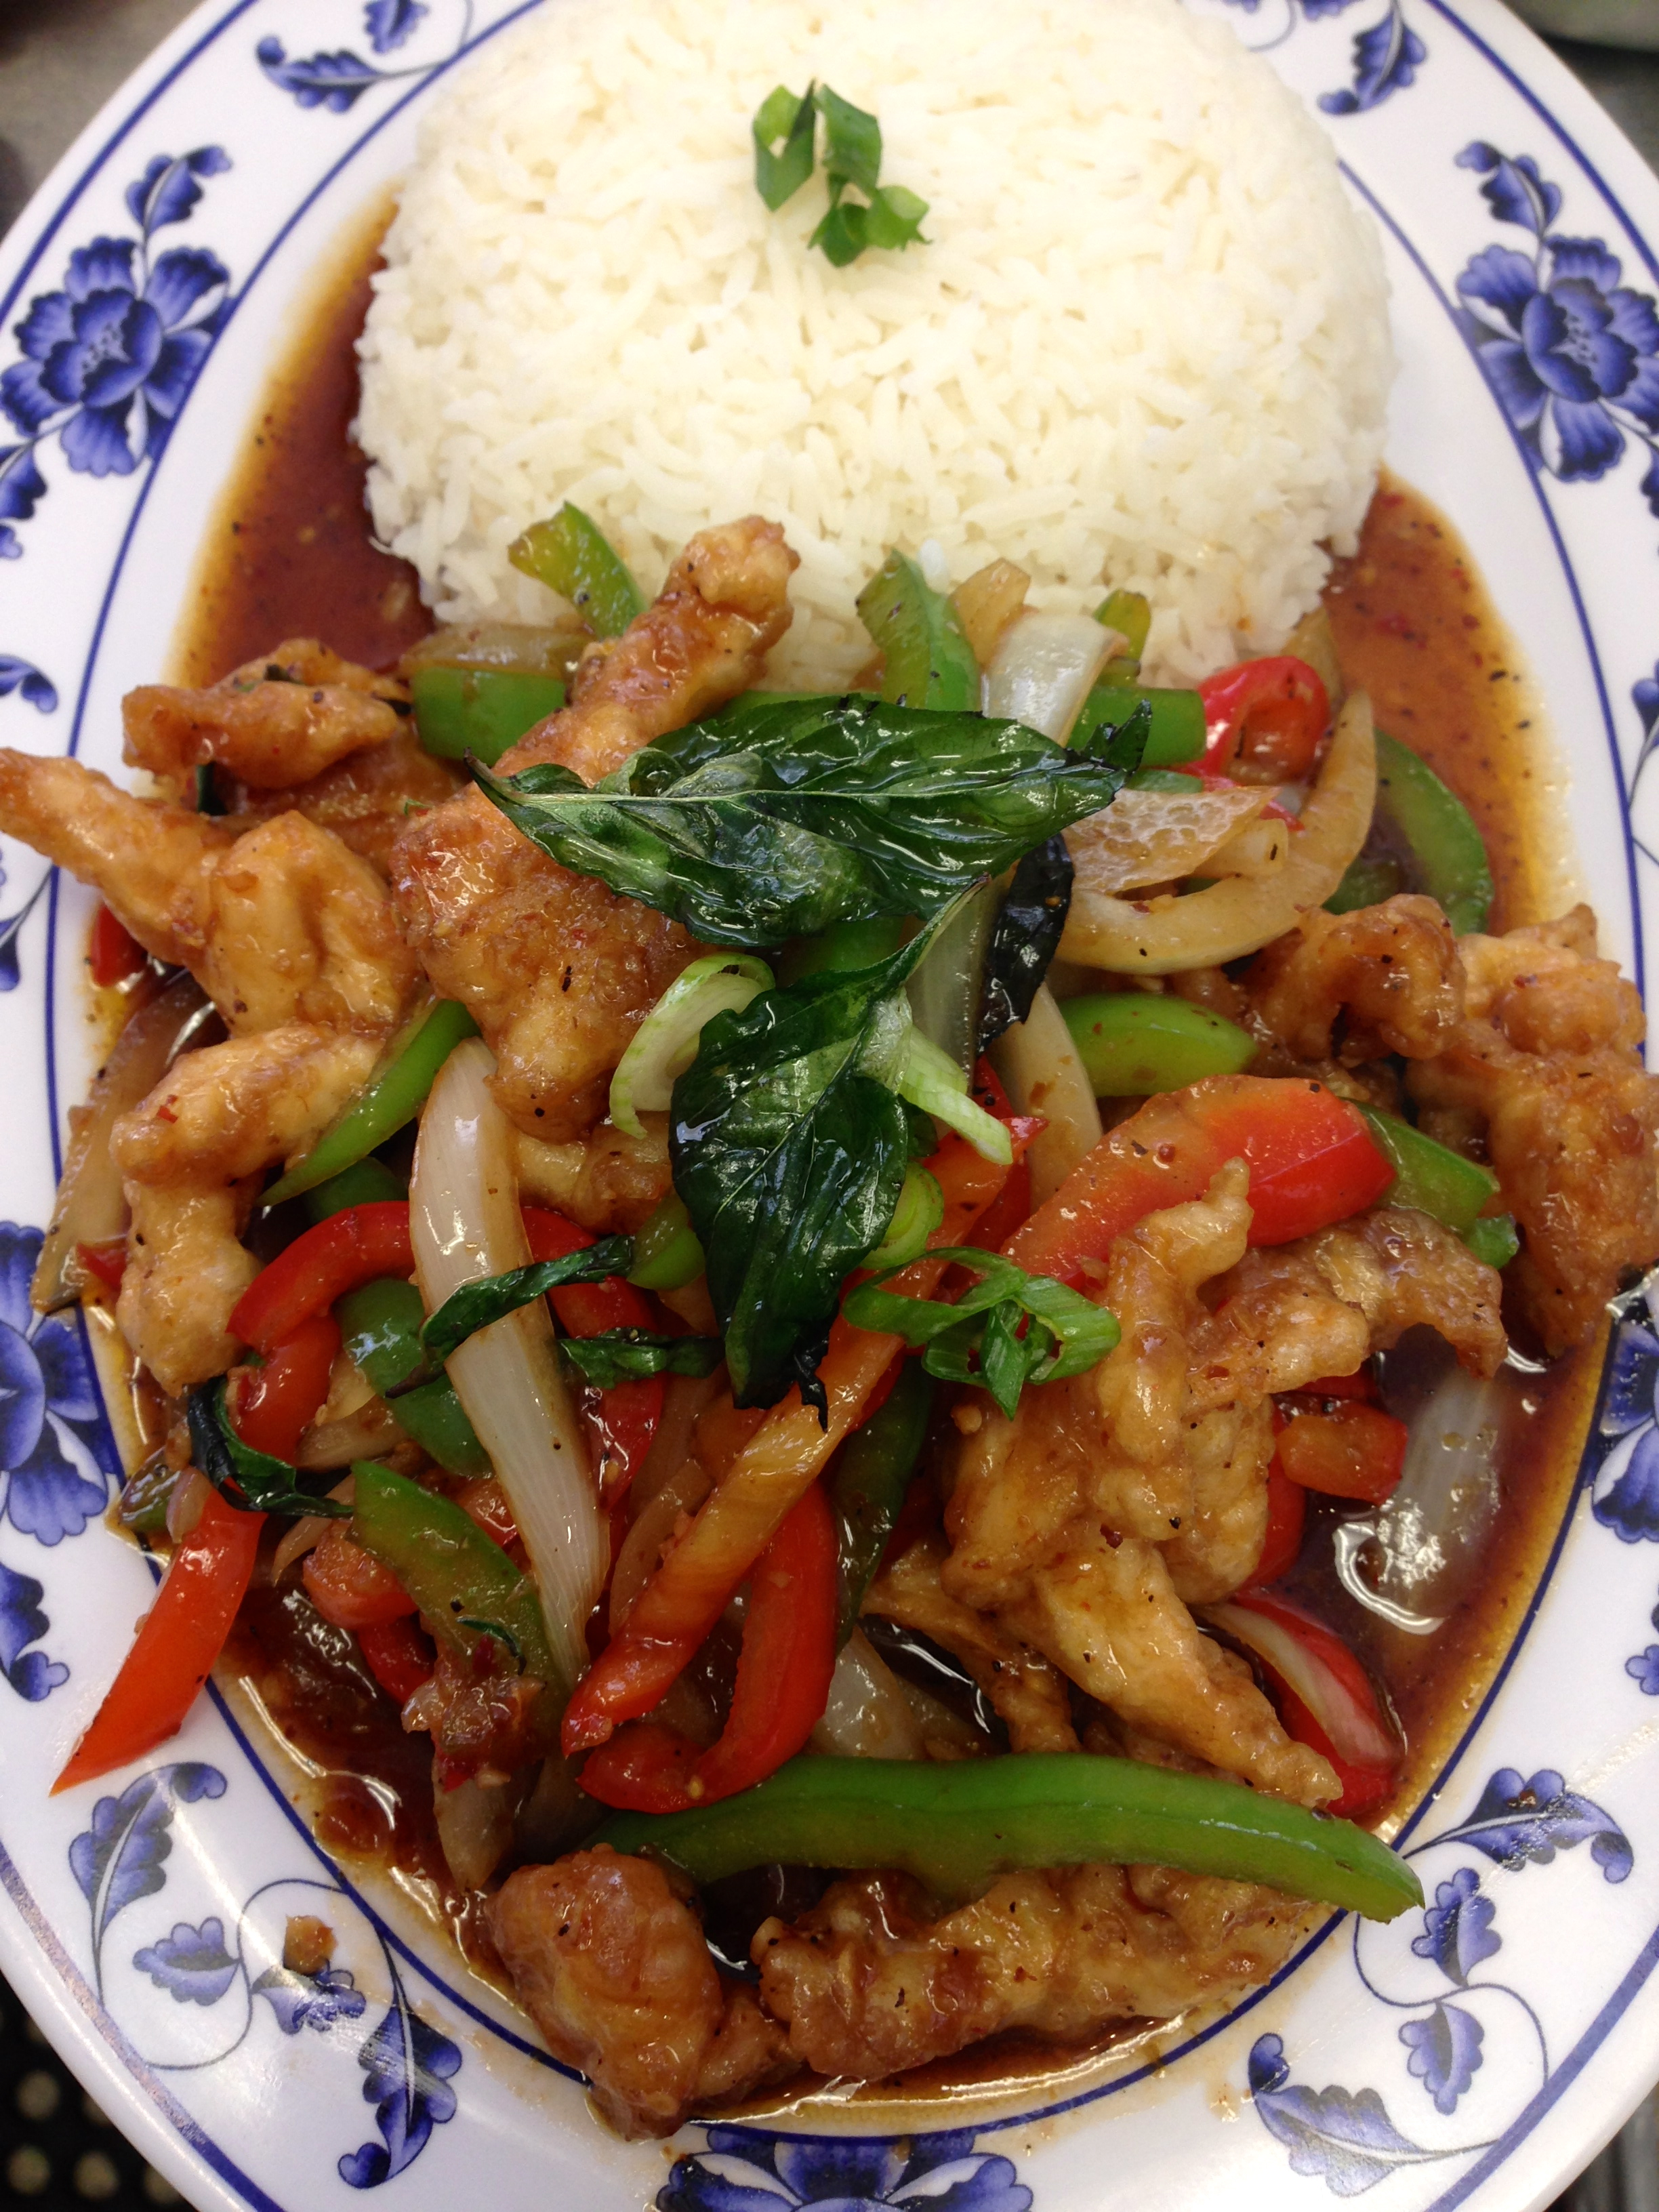 SP 3 STIR FRIED BREADED CHICKEN WITH CHILI PASTE